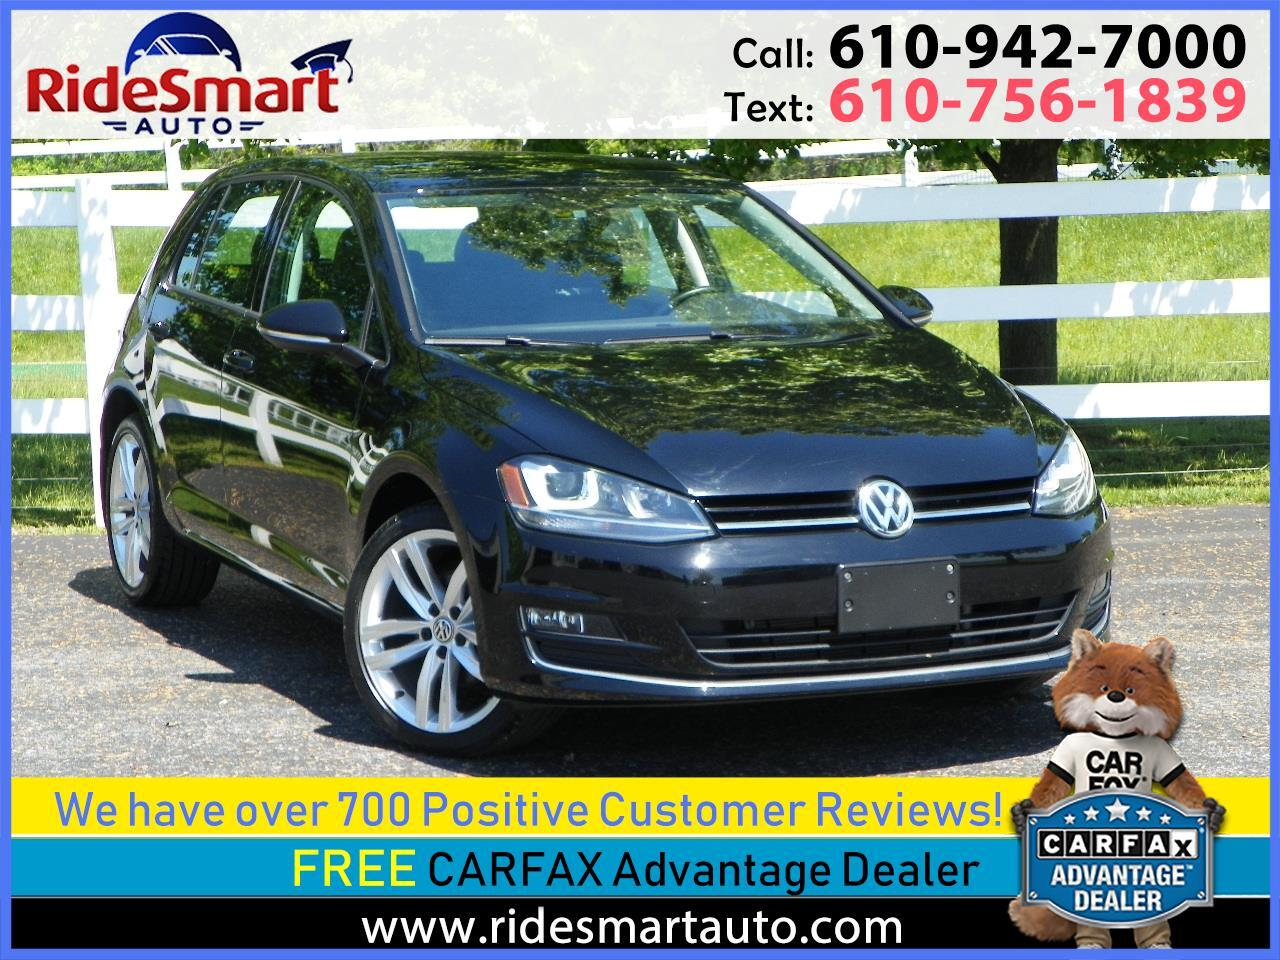 2015 Volkswagen Golf TDI SEL Nav-Pano Sunroof-Leather-Fender Sound